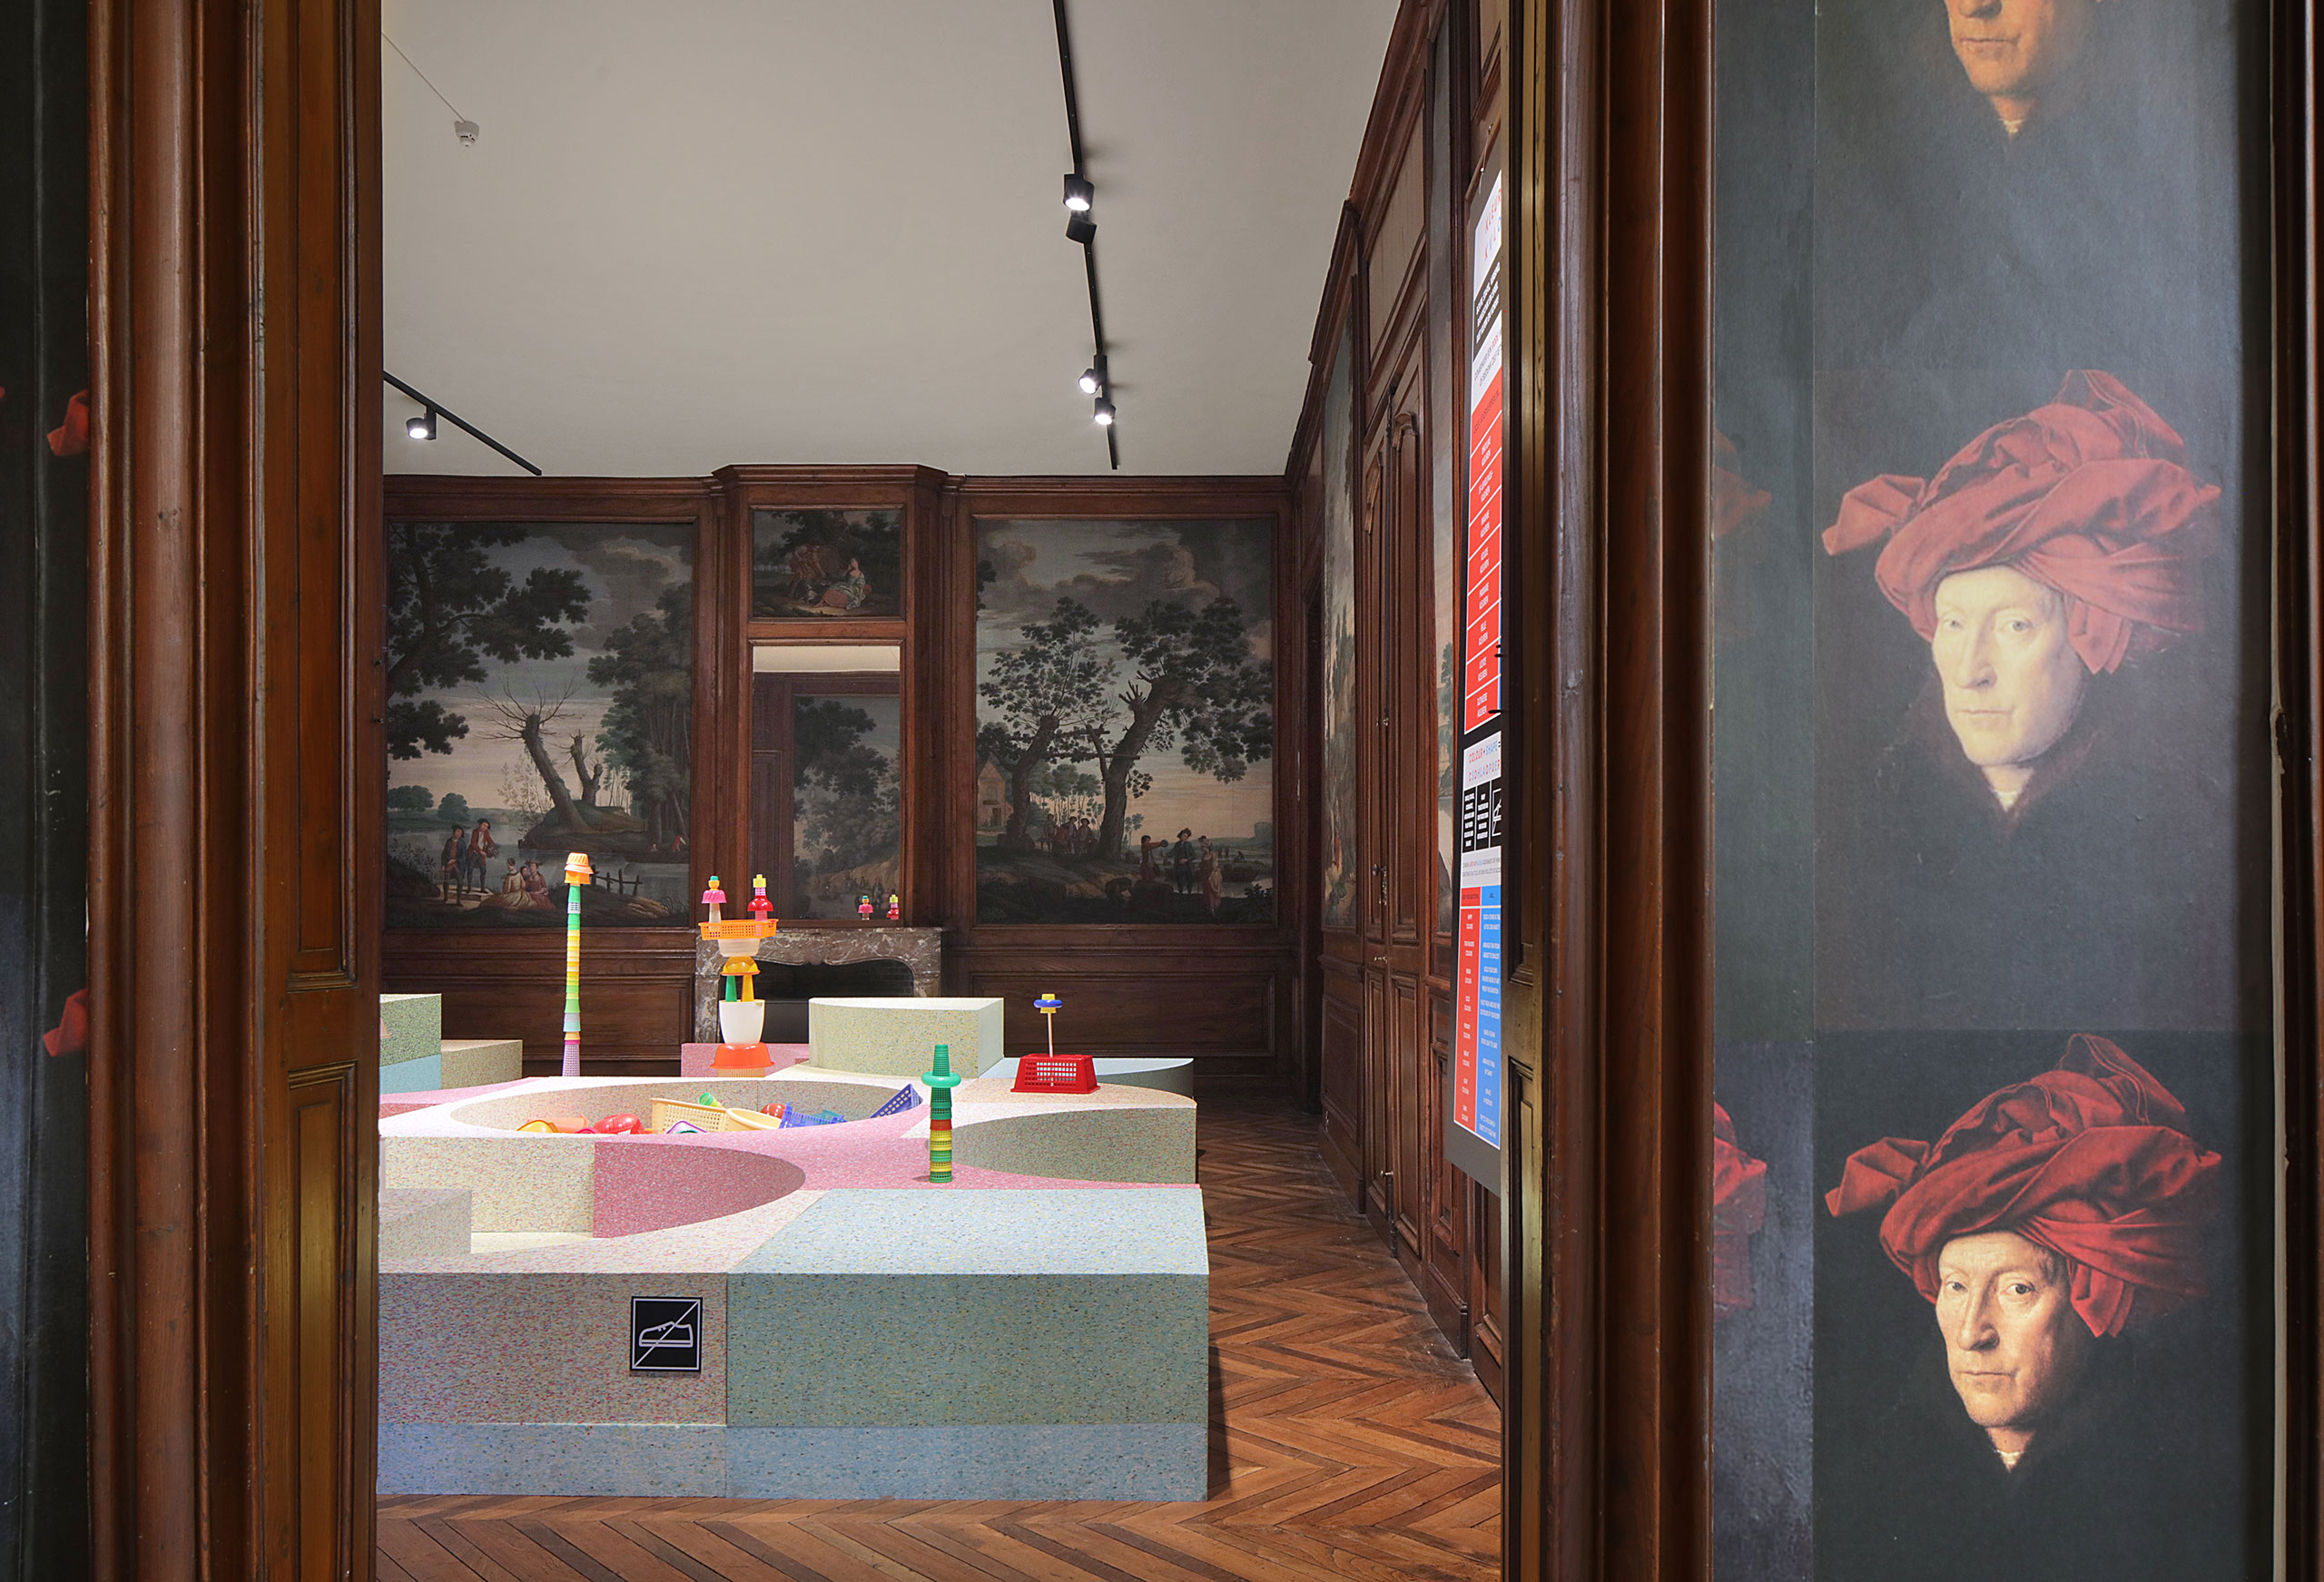 "Exhibition view. ""Kleureyck. Van Eyck's Colours in Design"" at Design Museum Ghent. Featured (foregound): Studio RENS, Changing Perception / ONLINE, 2020. Featured (interior of room): Joanna Reuse, C S D H L A O P U E R , 2020. Photo by Filip Dujardin."